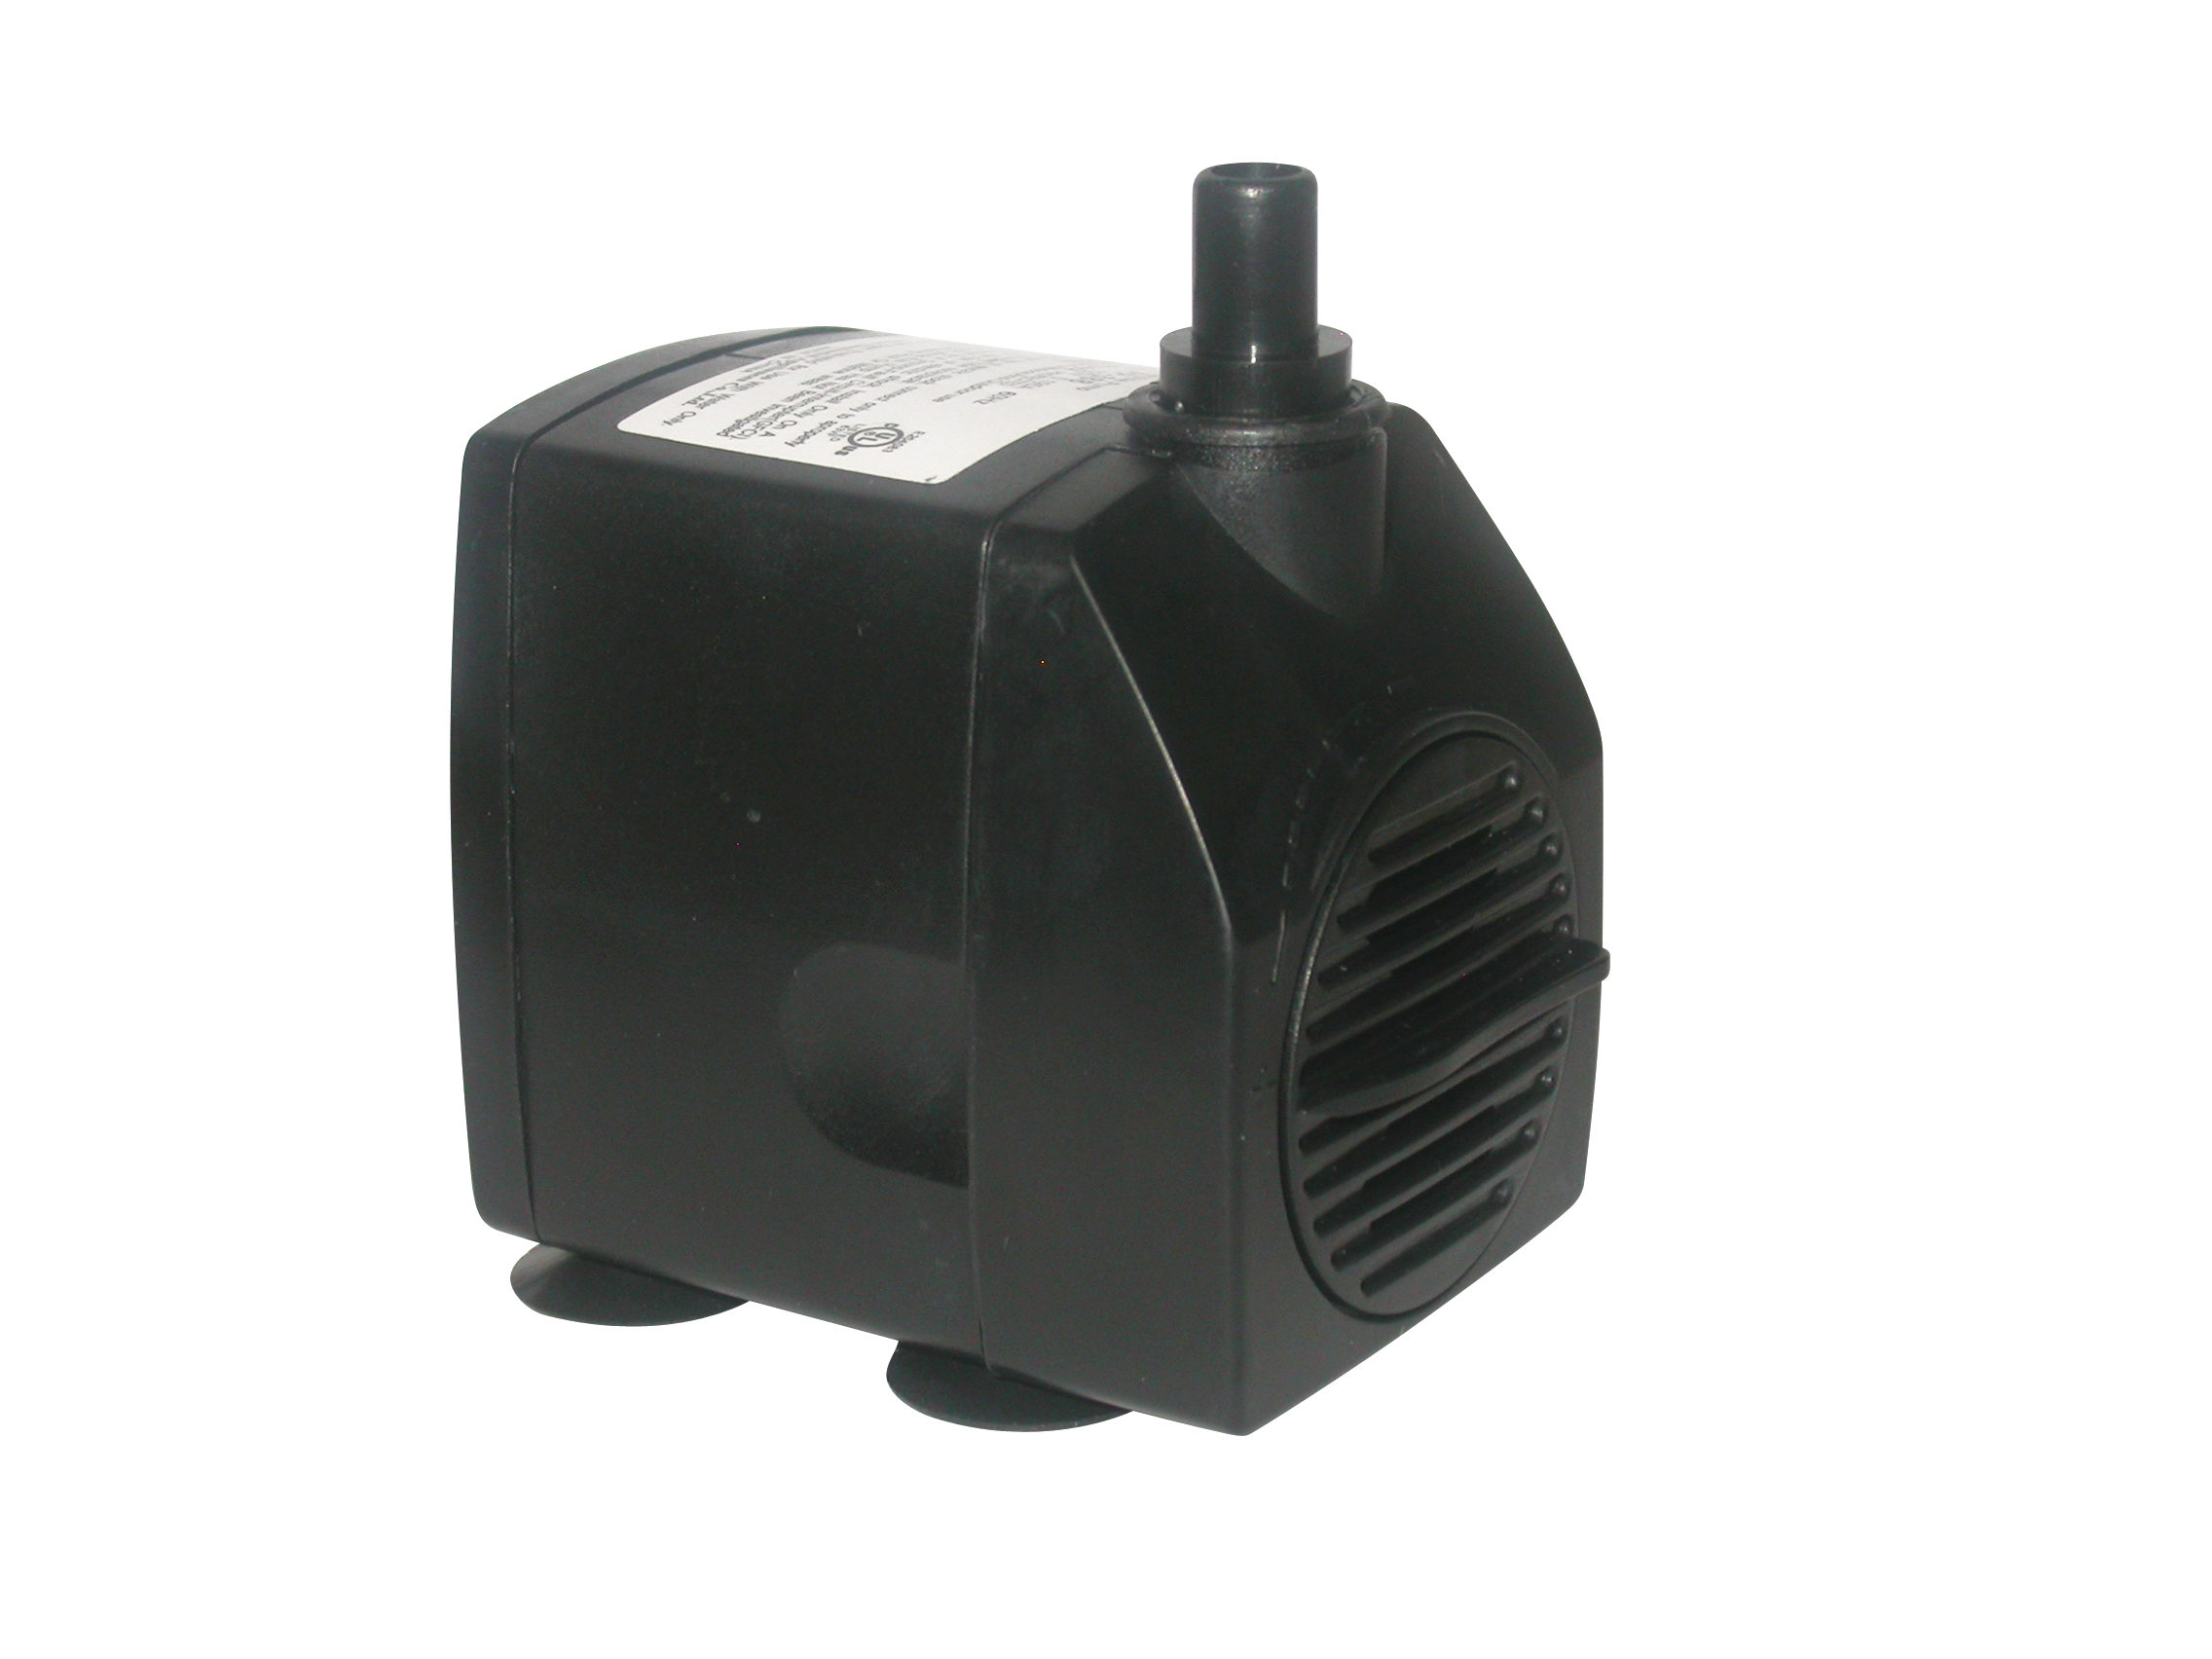 180 GPH Power Head Pump with 6 Ft. Cord